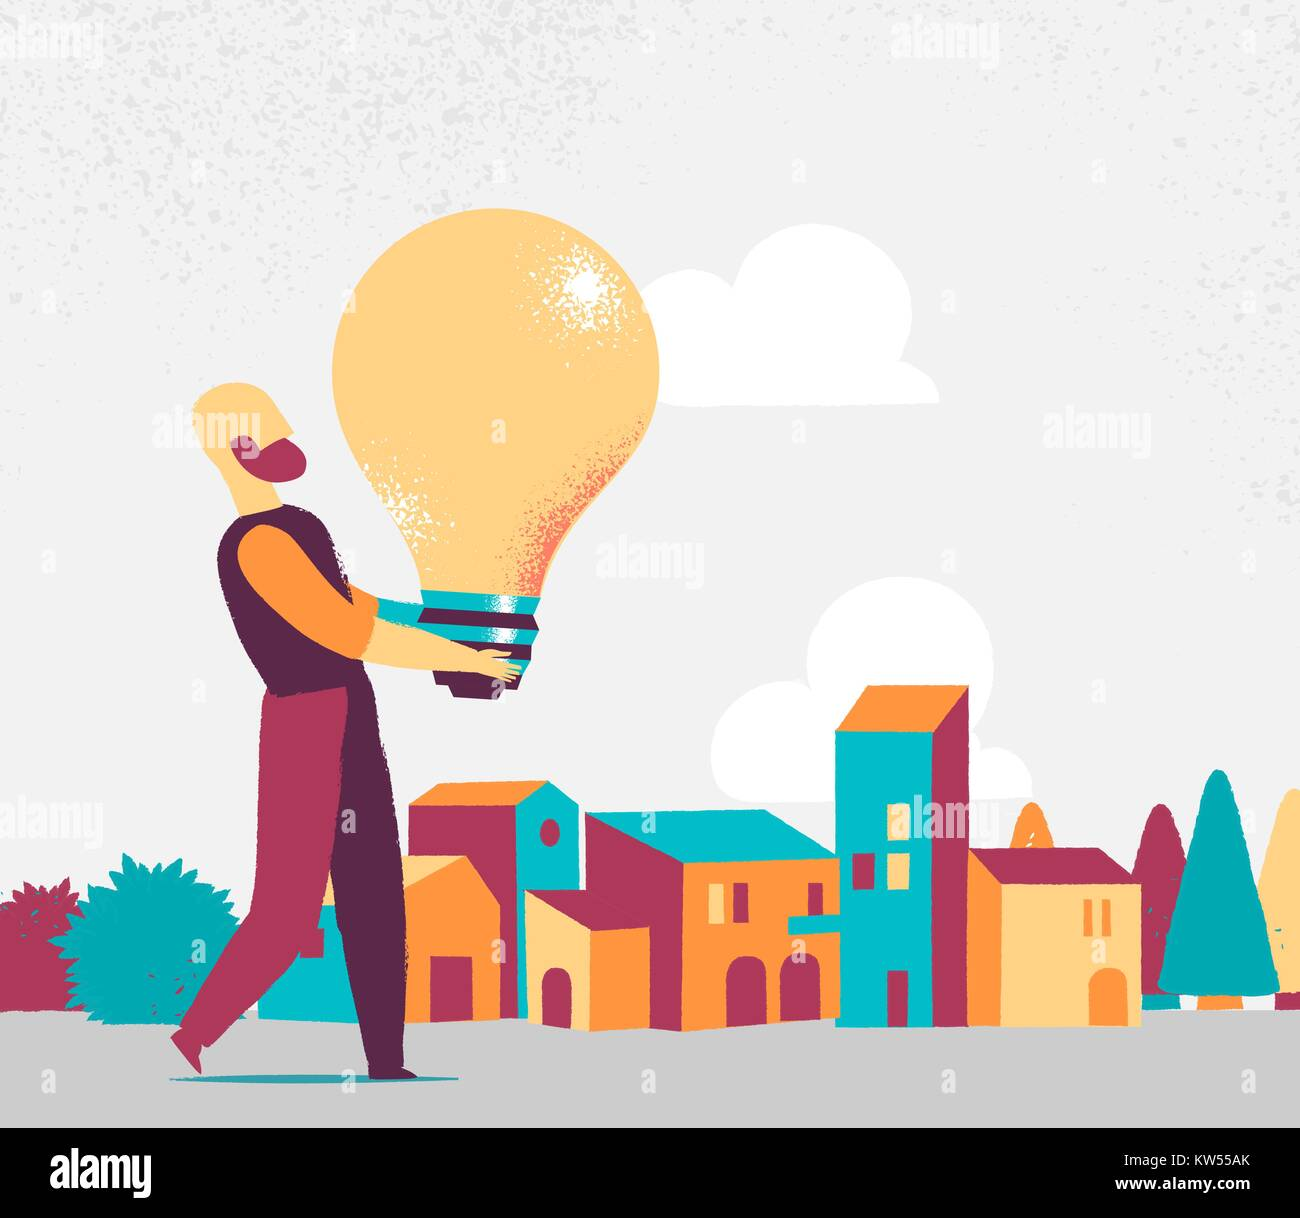 man bring great idea for the city - Stock Vector